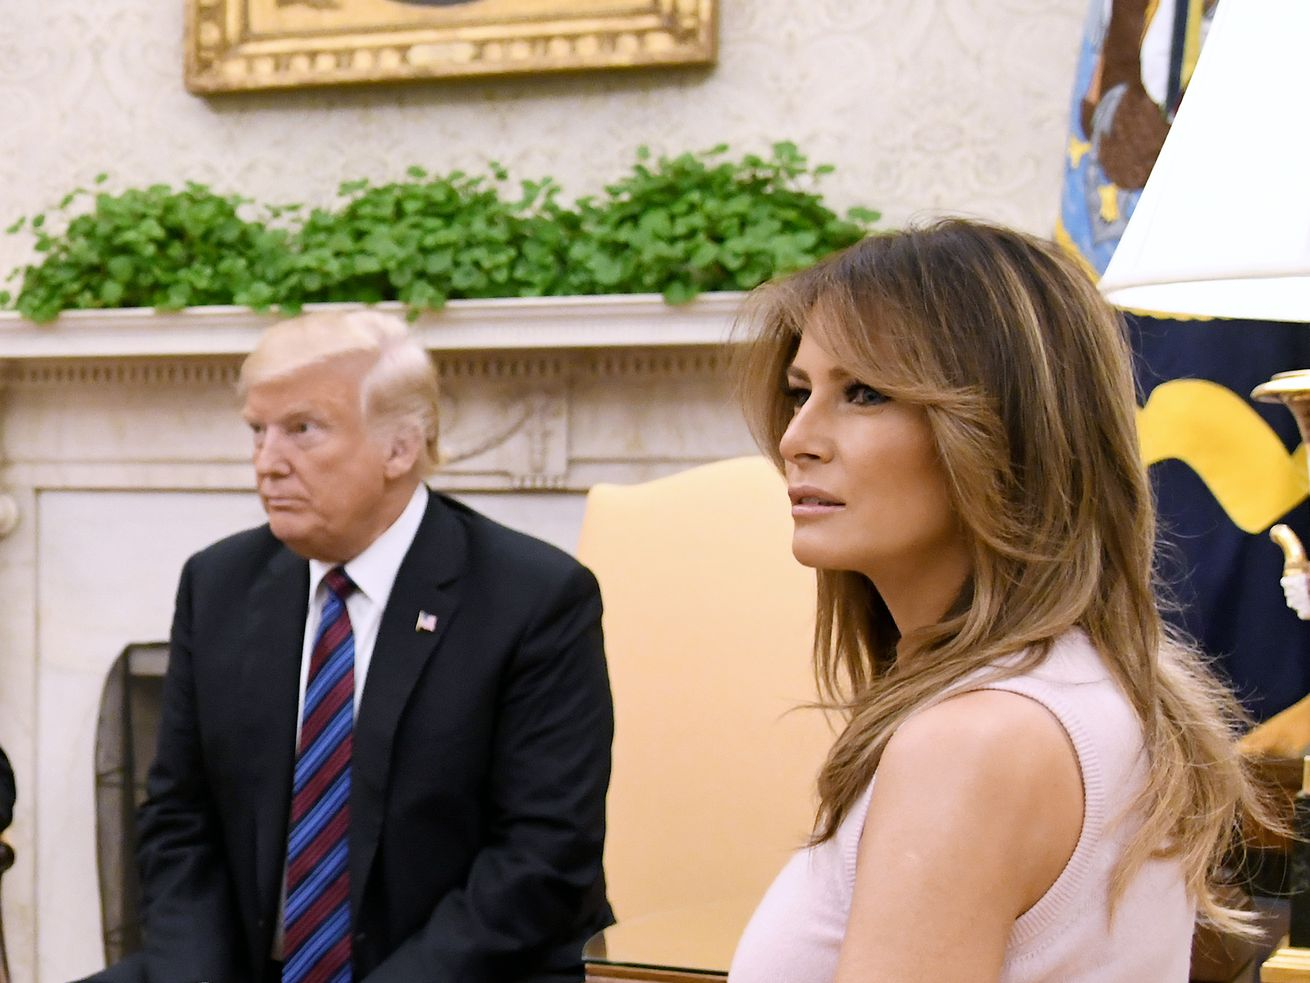 """In an ABC interview taped during her first solo trip abroad, first lady Melania Trump said she has """"more important things to think about"""" than her husband's alleged affairs."""